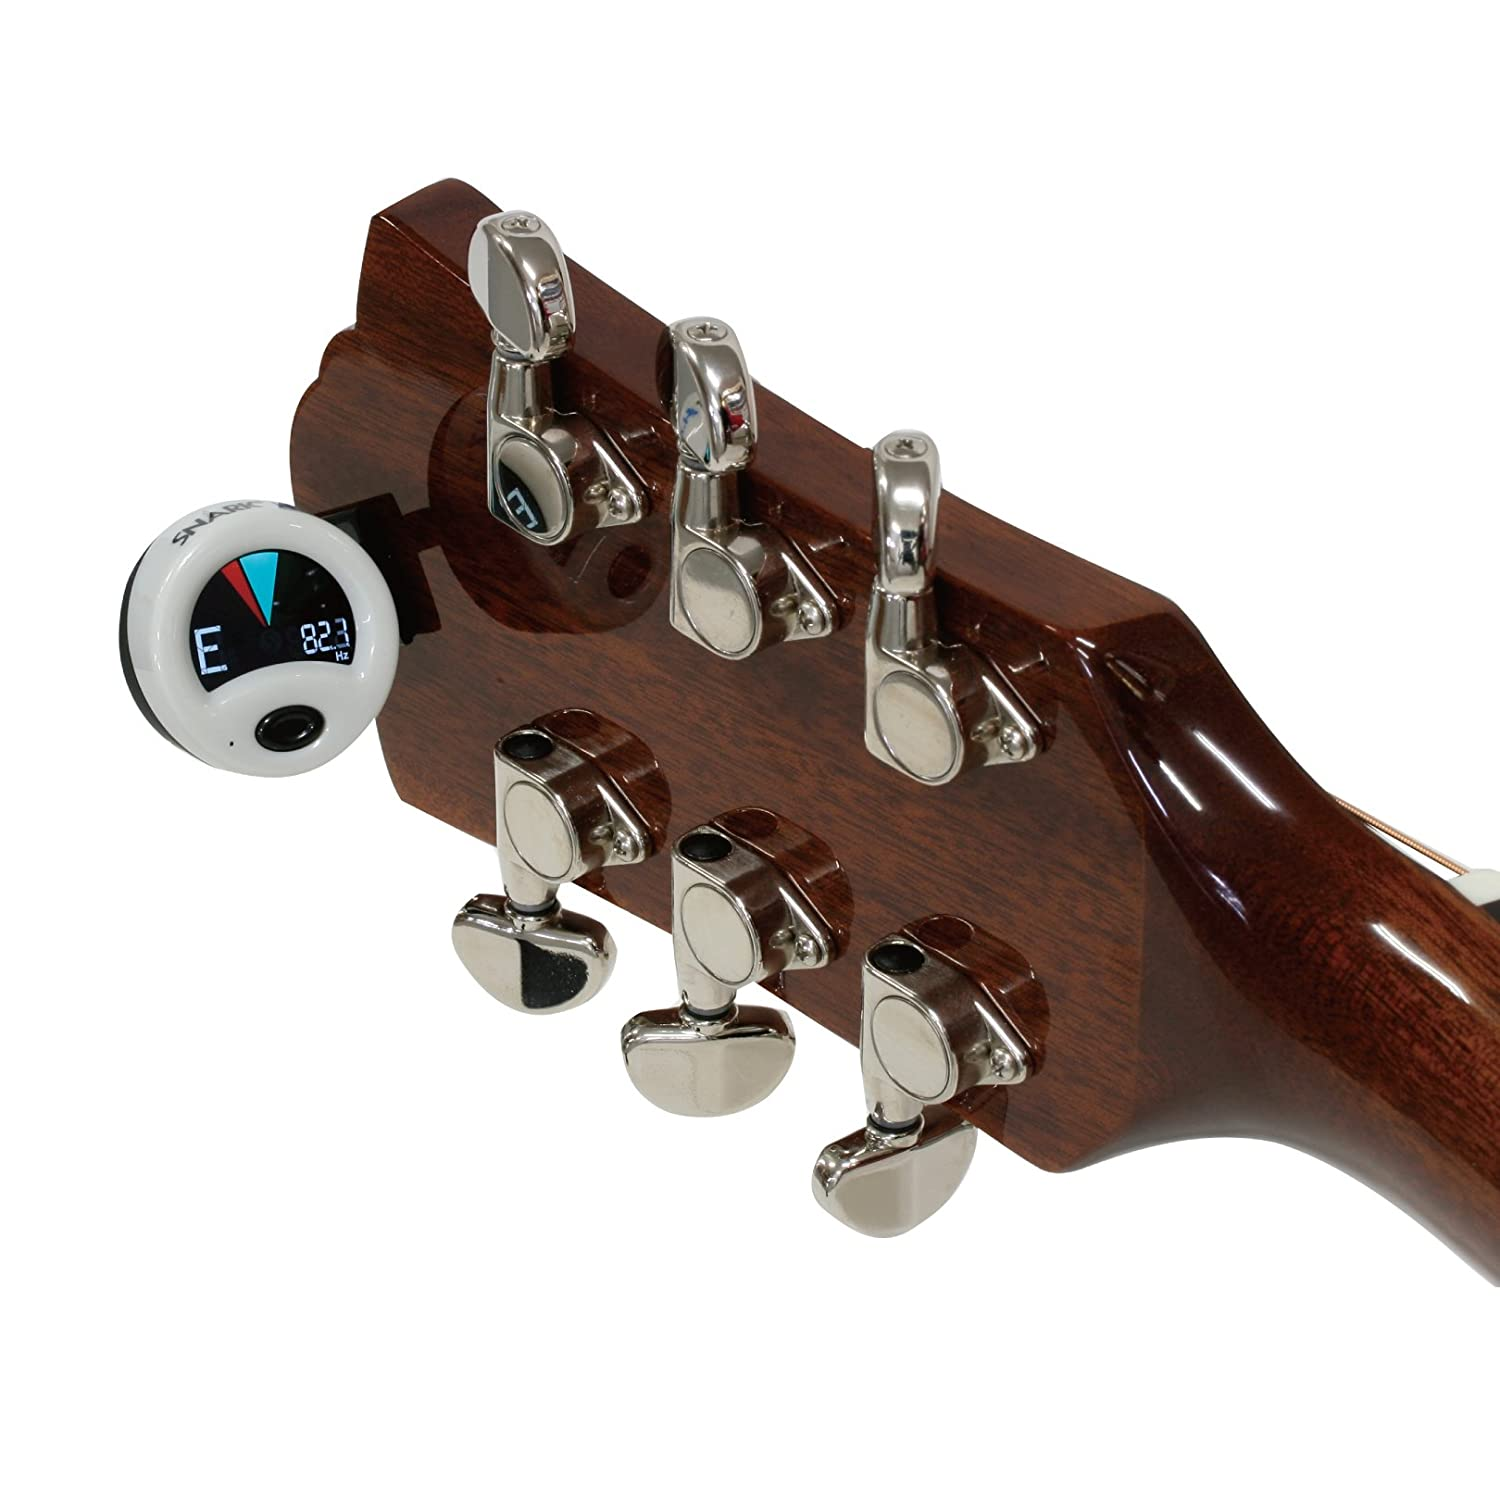 snark hz1 hz 1 unbreakable clamp clip guitar tuner